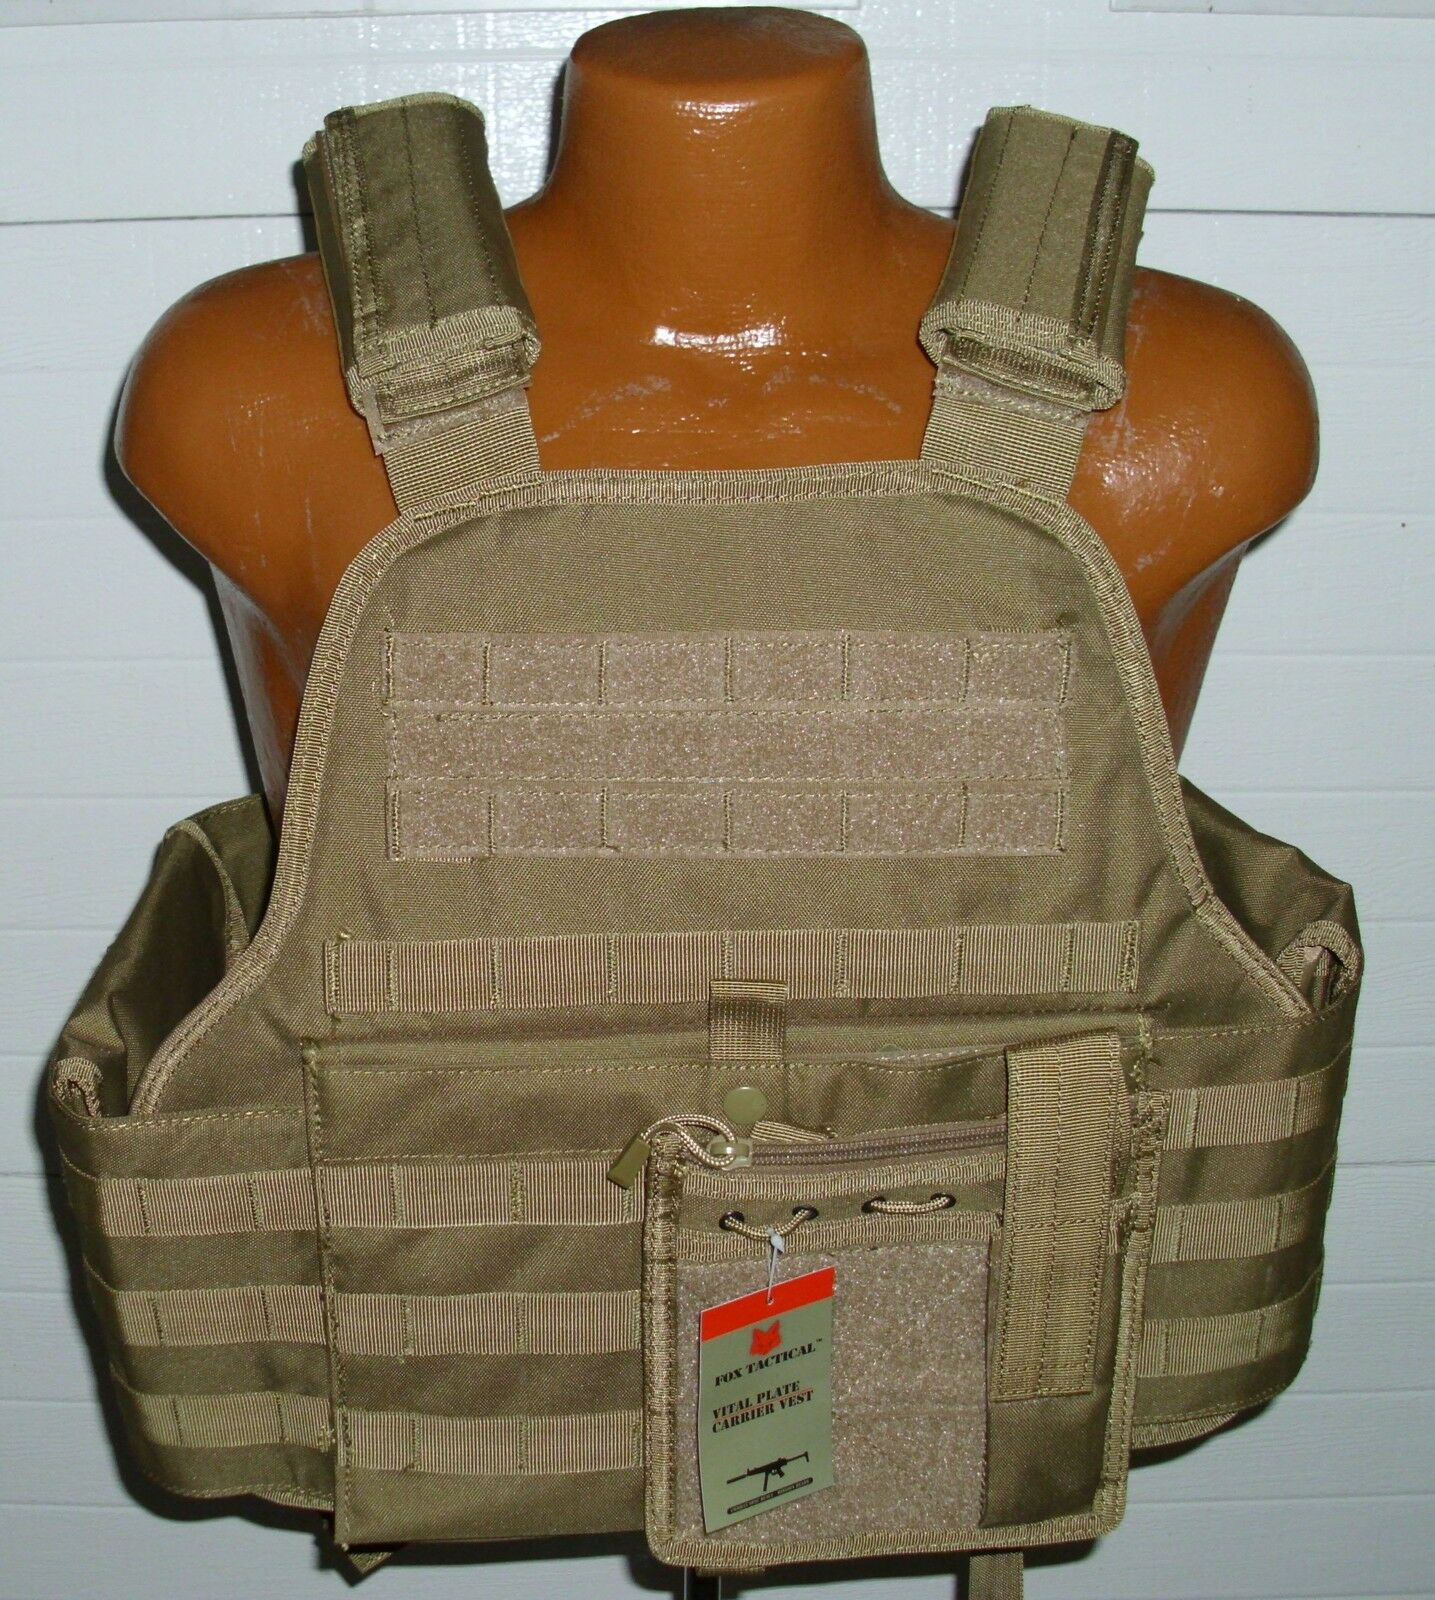 Tactical Modular Vital MOLLE Plate Armor Carrier Vest -  COYOTE DESERT TAN  offering 100%